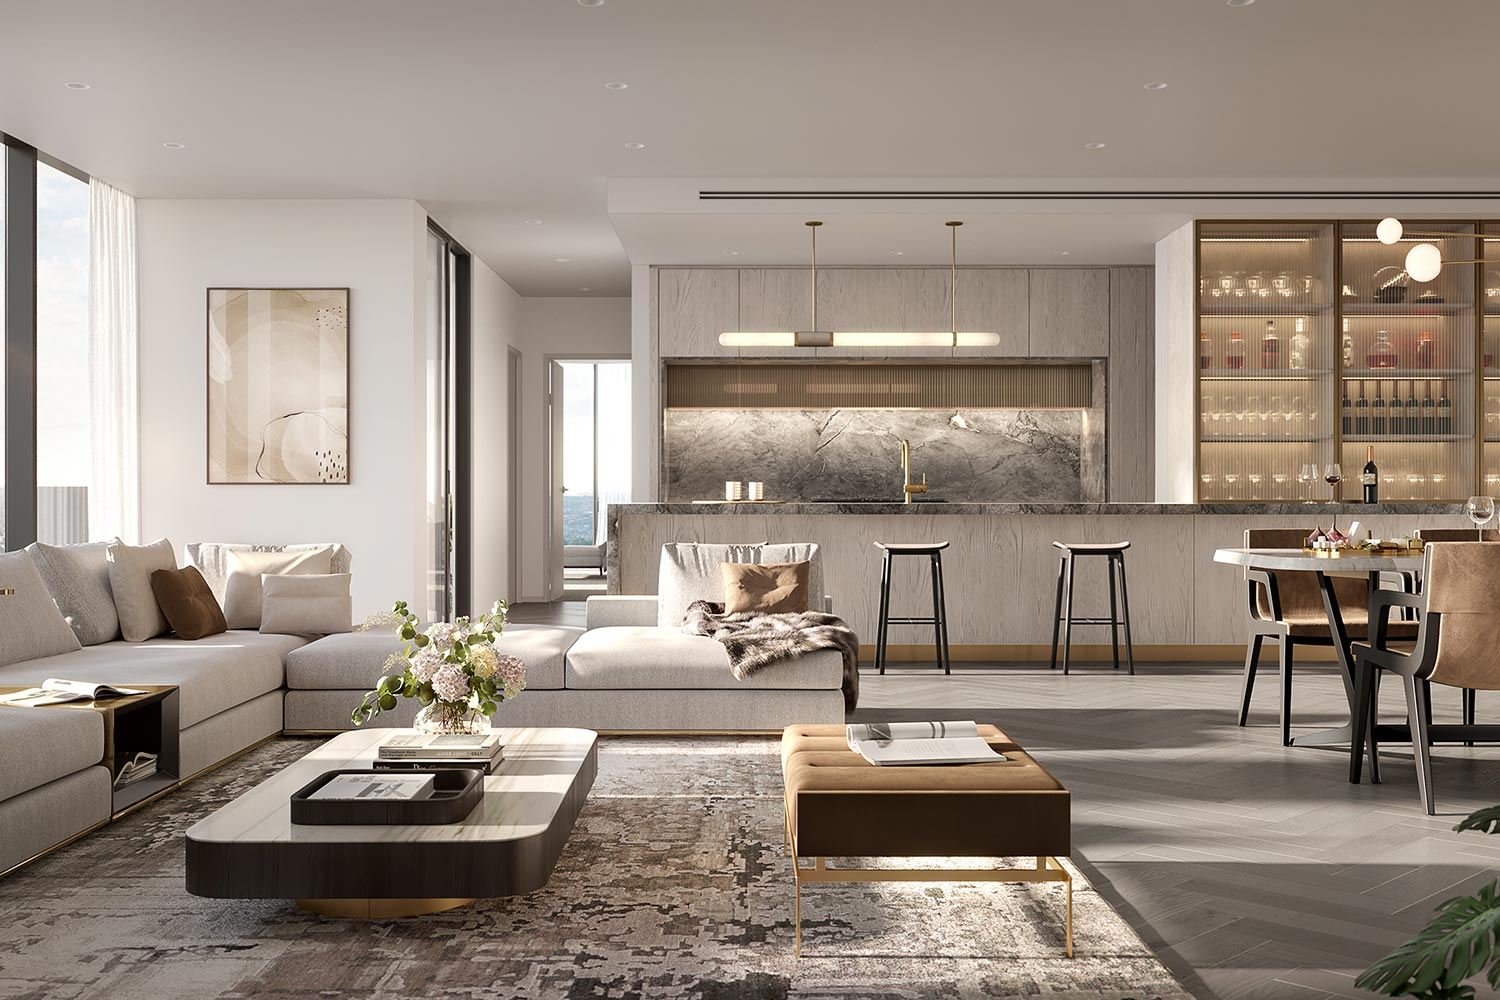 Spring St Box Hill Penthouse Interior